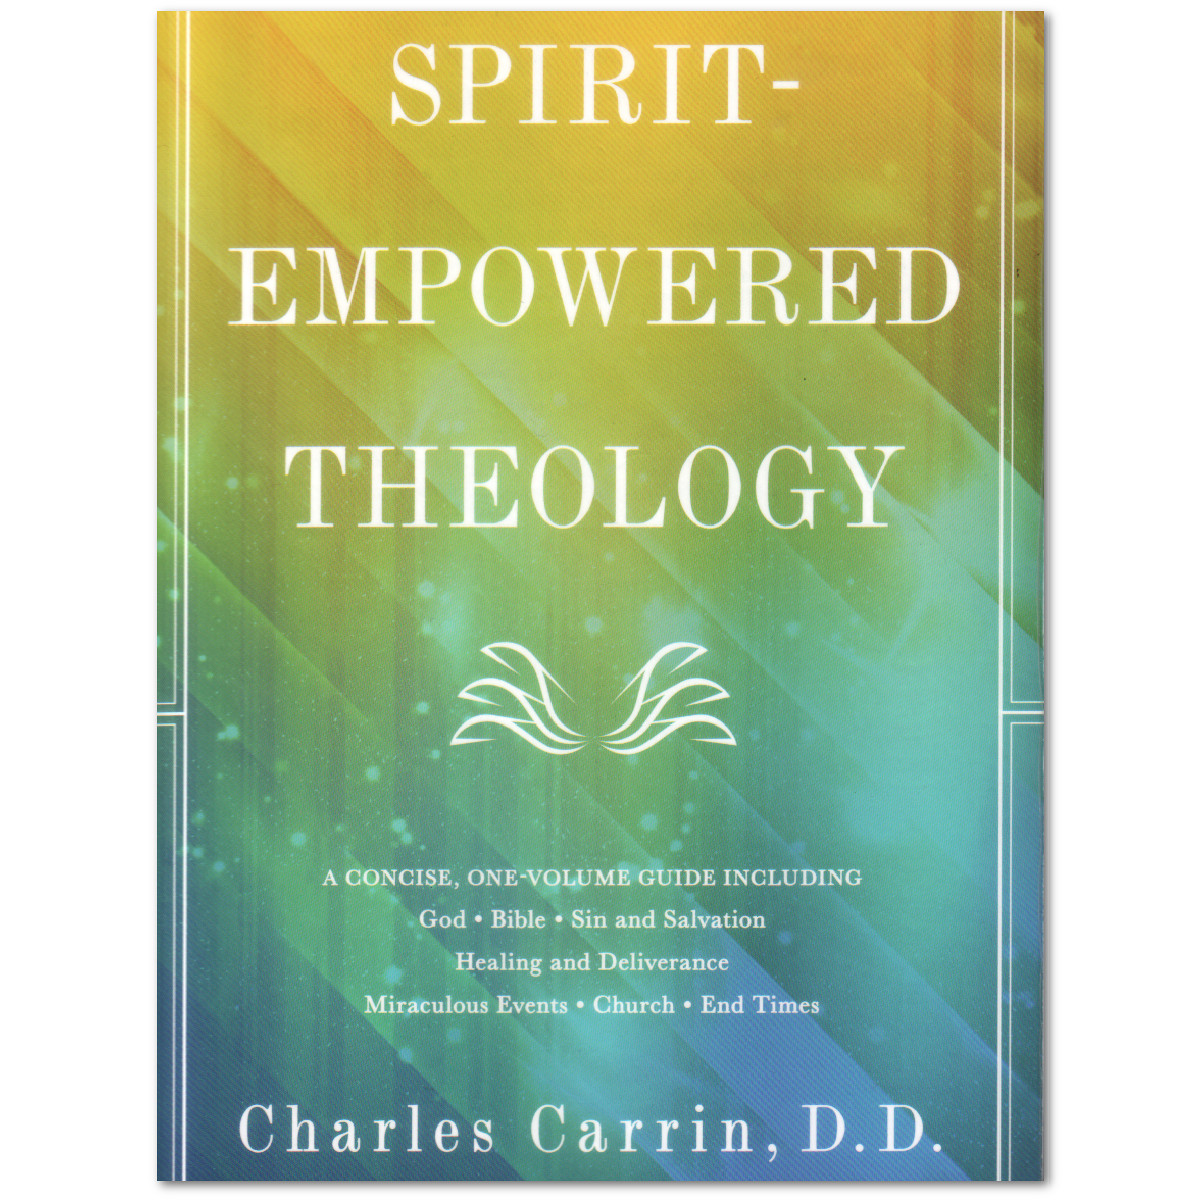 Worth Reading…with Healthy Skepticism: Carrin's Spirit-Empowered Theology